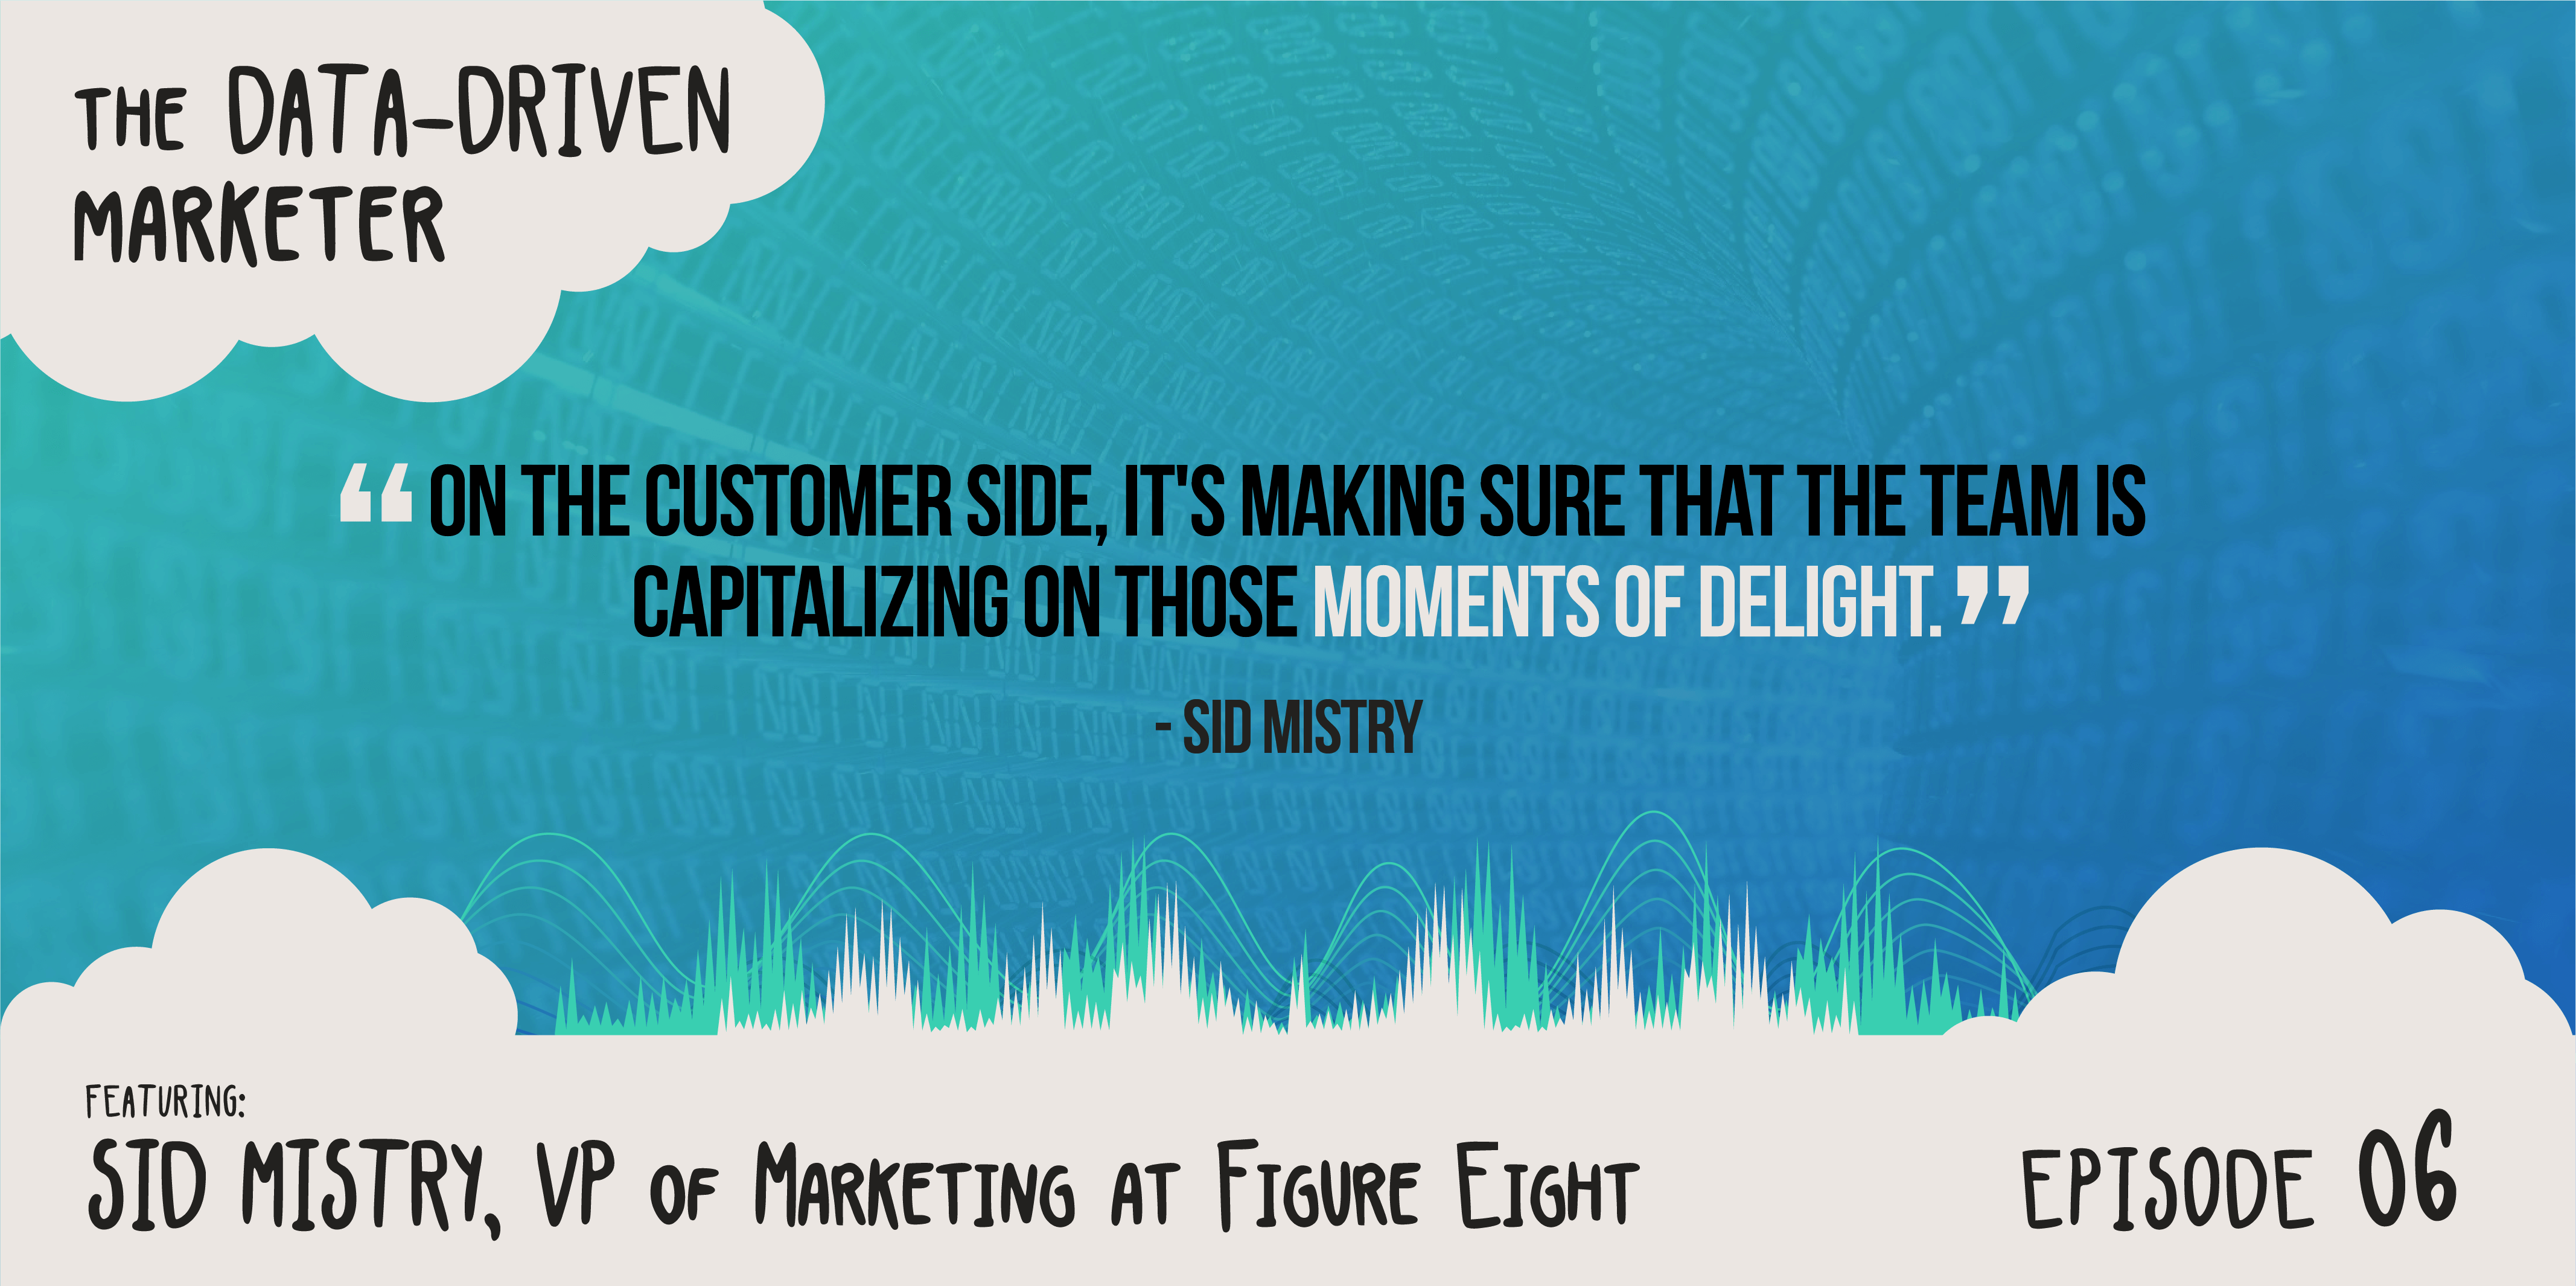 Tactic: Capitalize on those moments of delight